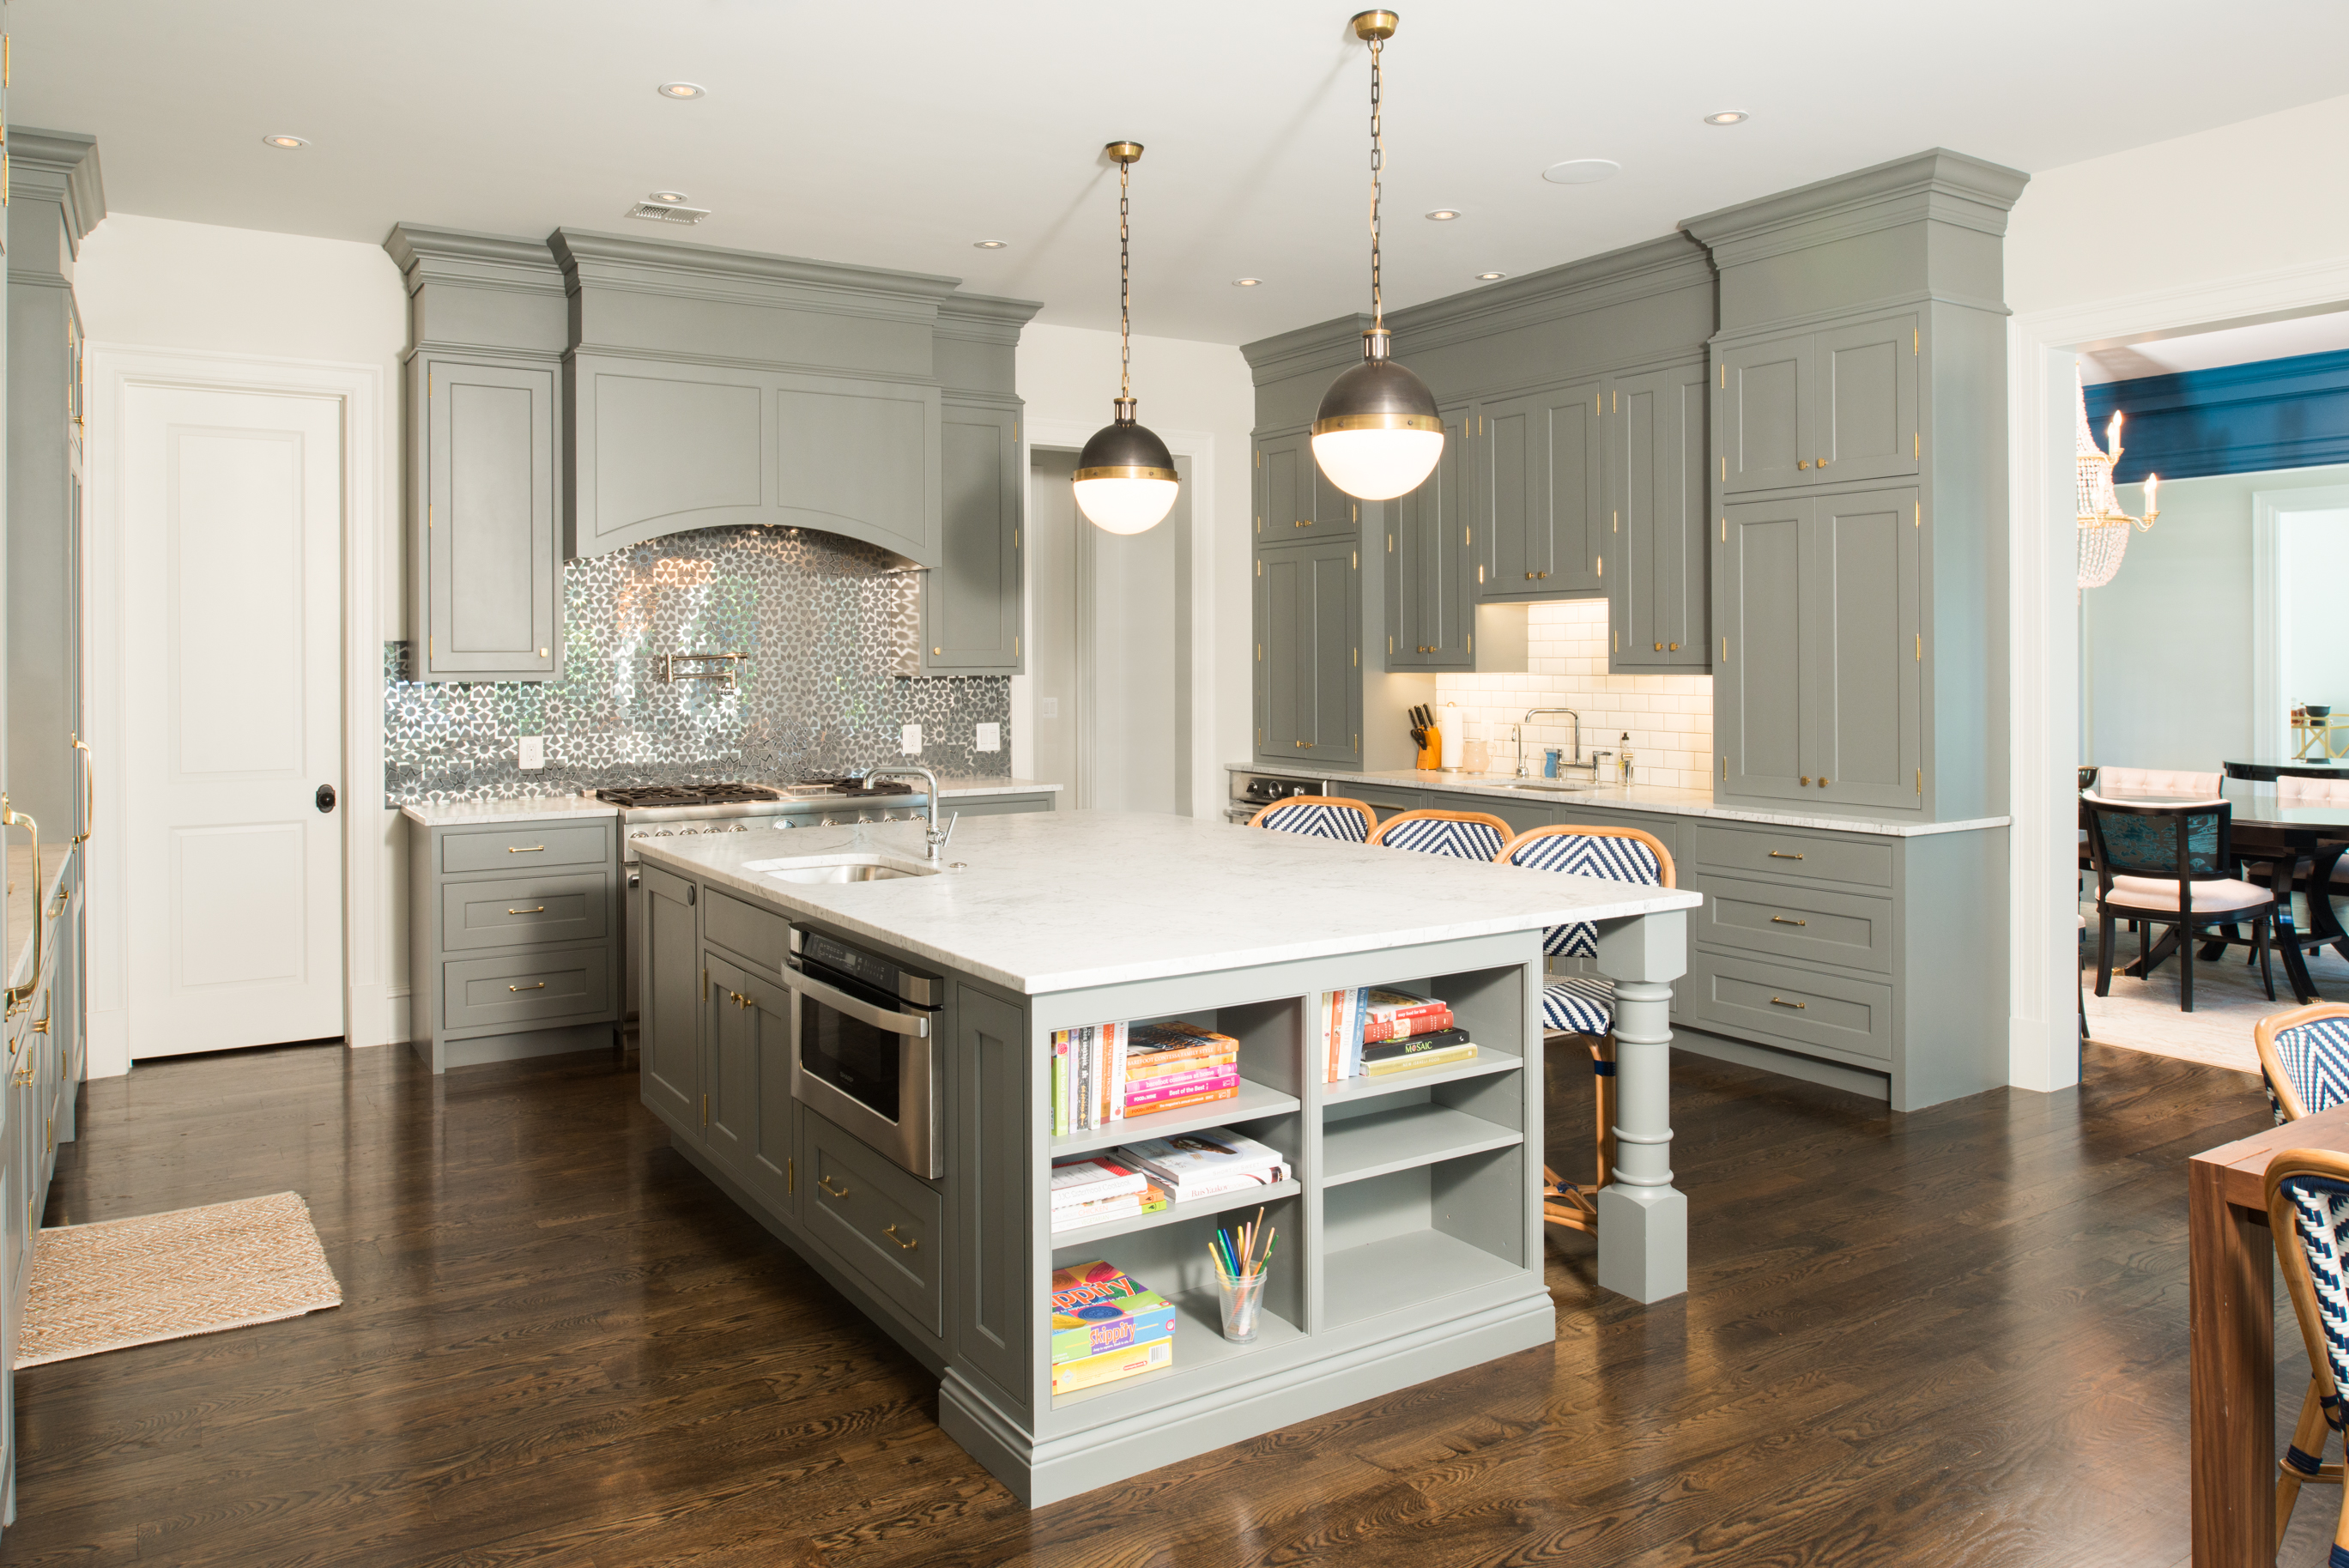 Stonington Road Kitchen Island